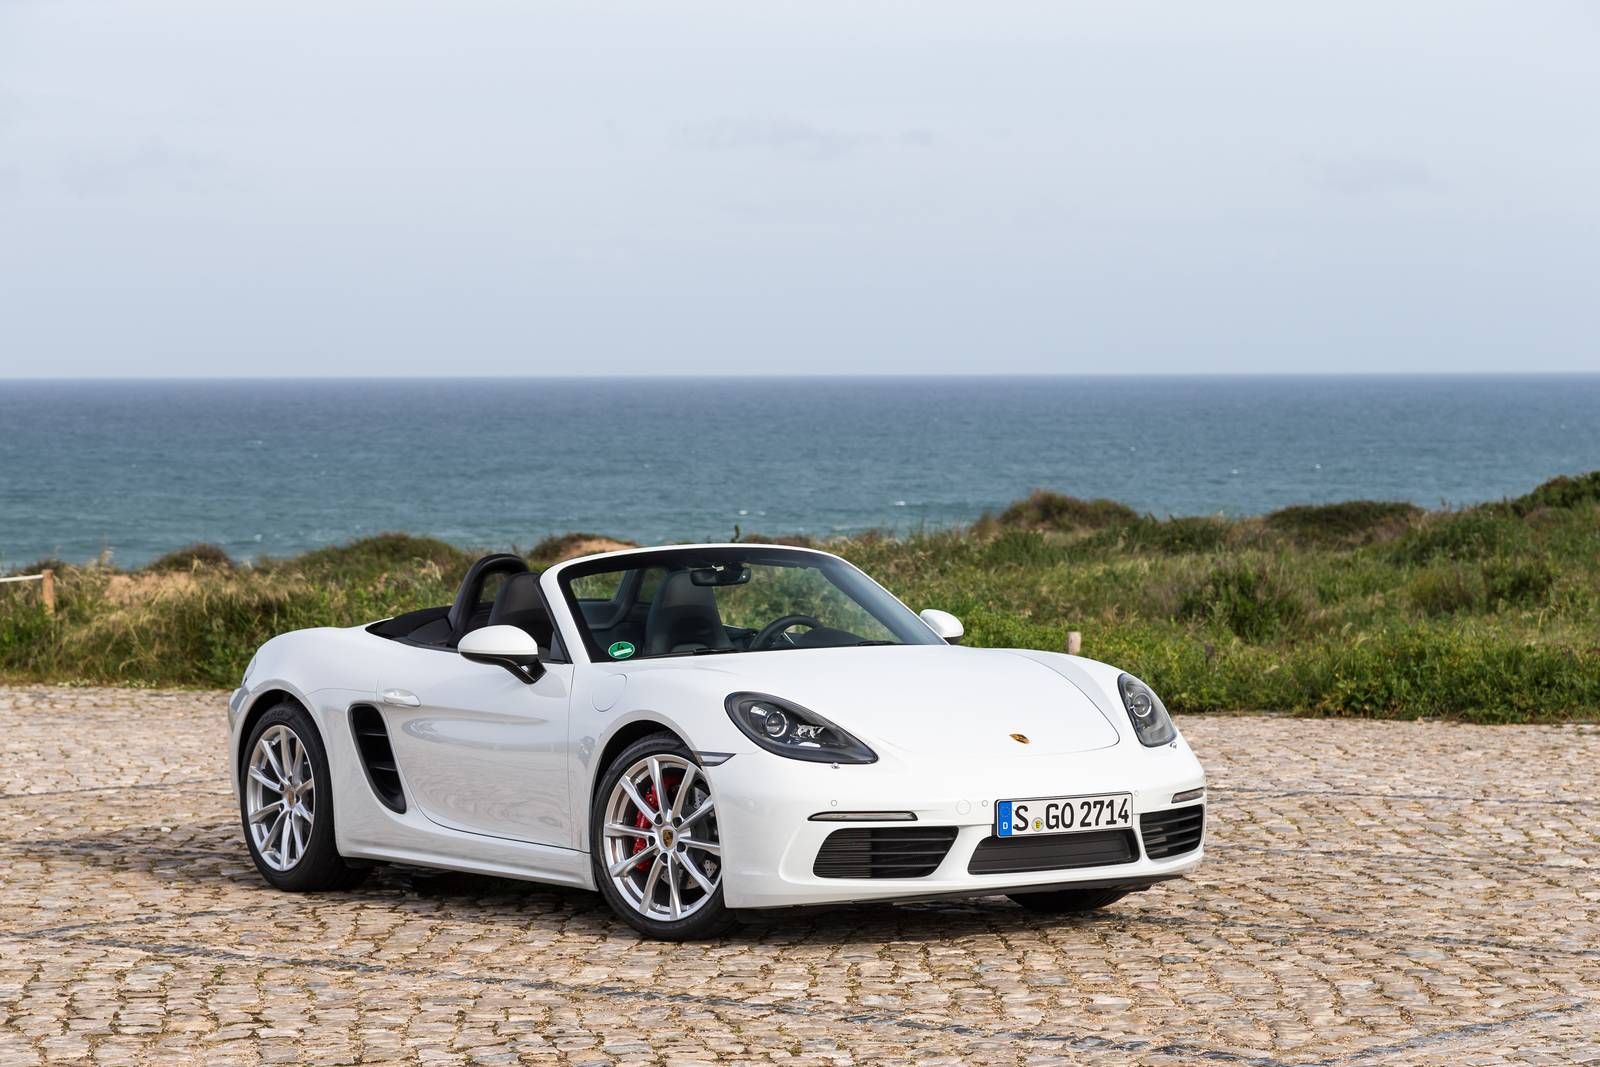 porsche 718 boxster cayman pagina 33 driving fun forum. Black Bedroom Furniture Sets. Home Design Ideas